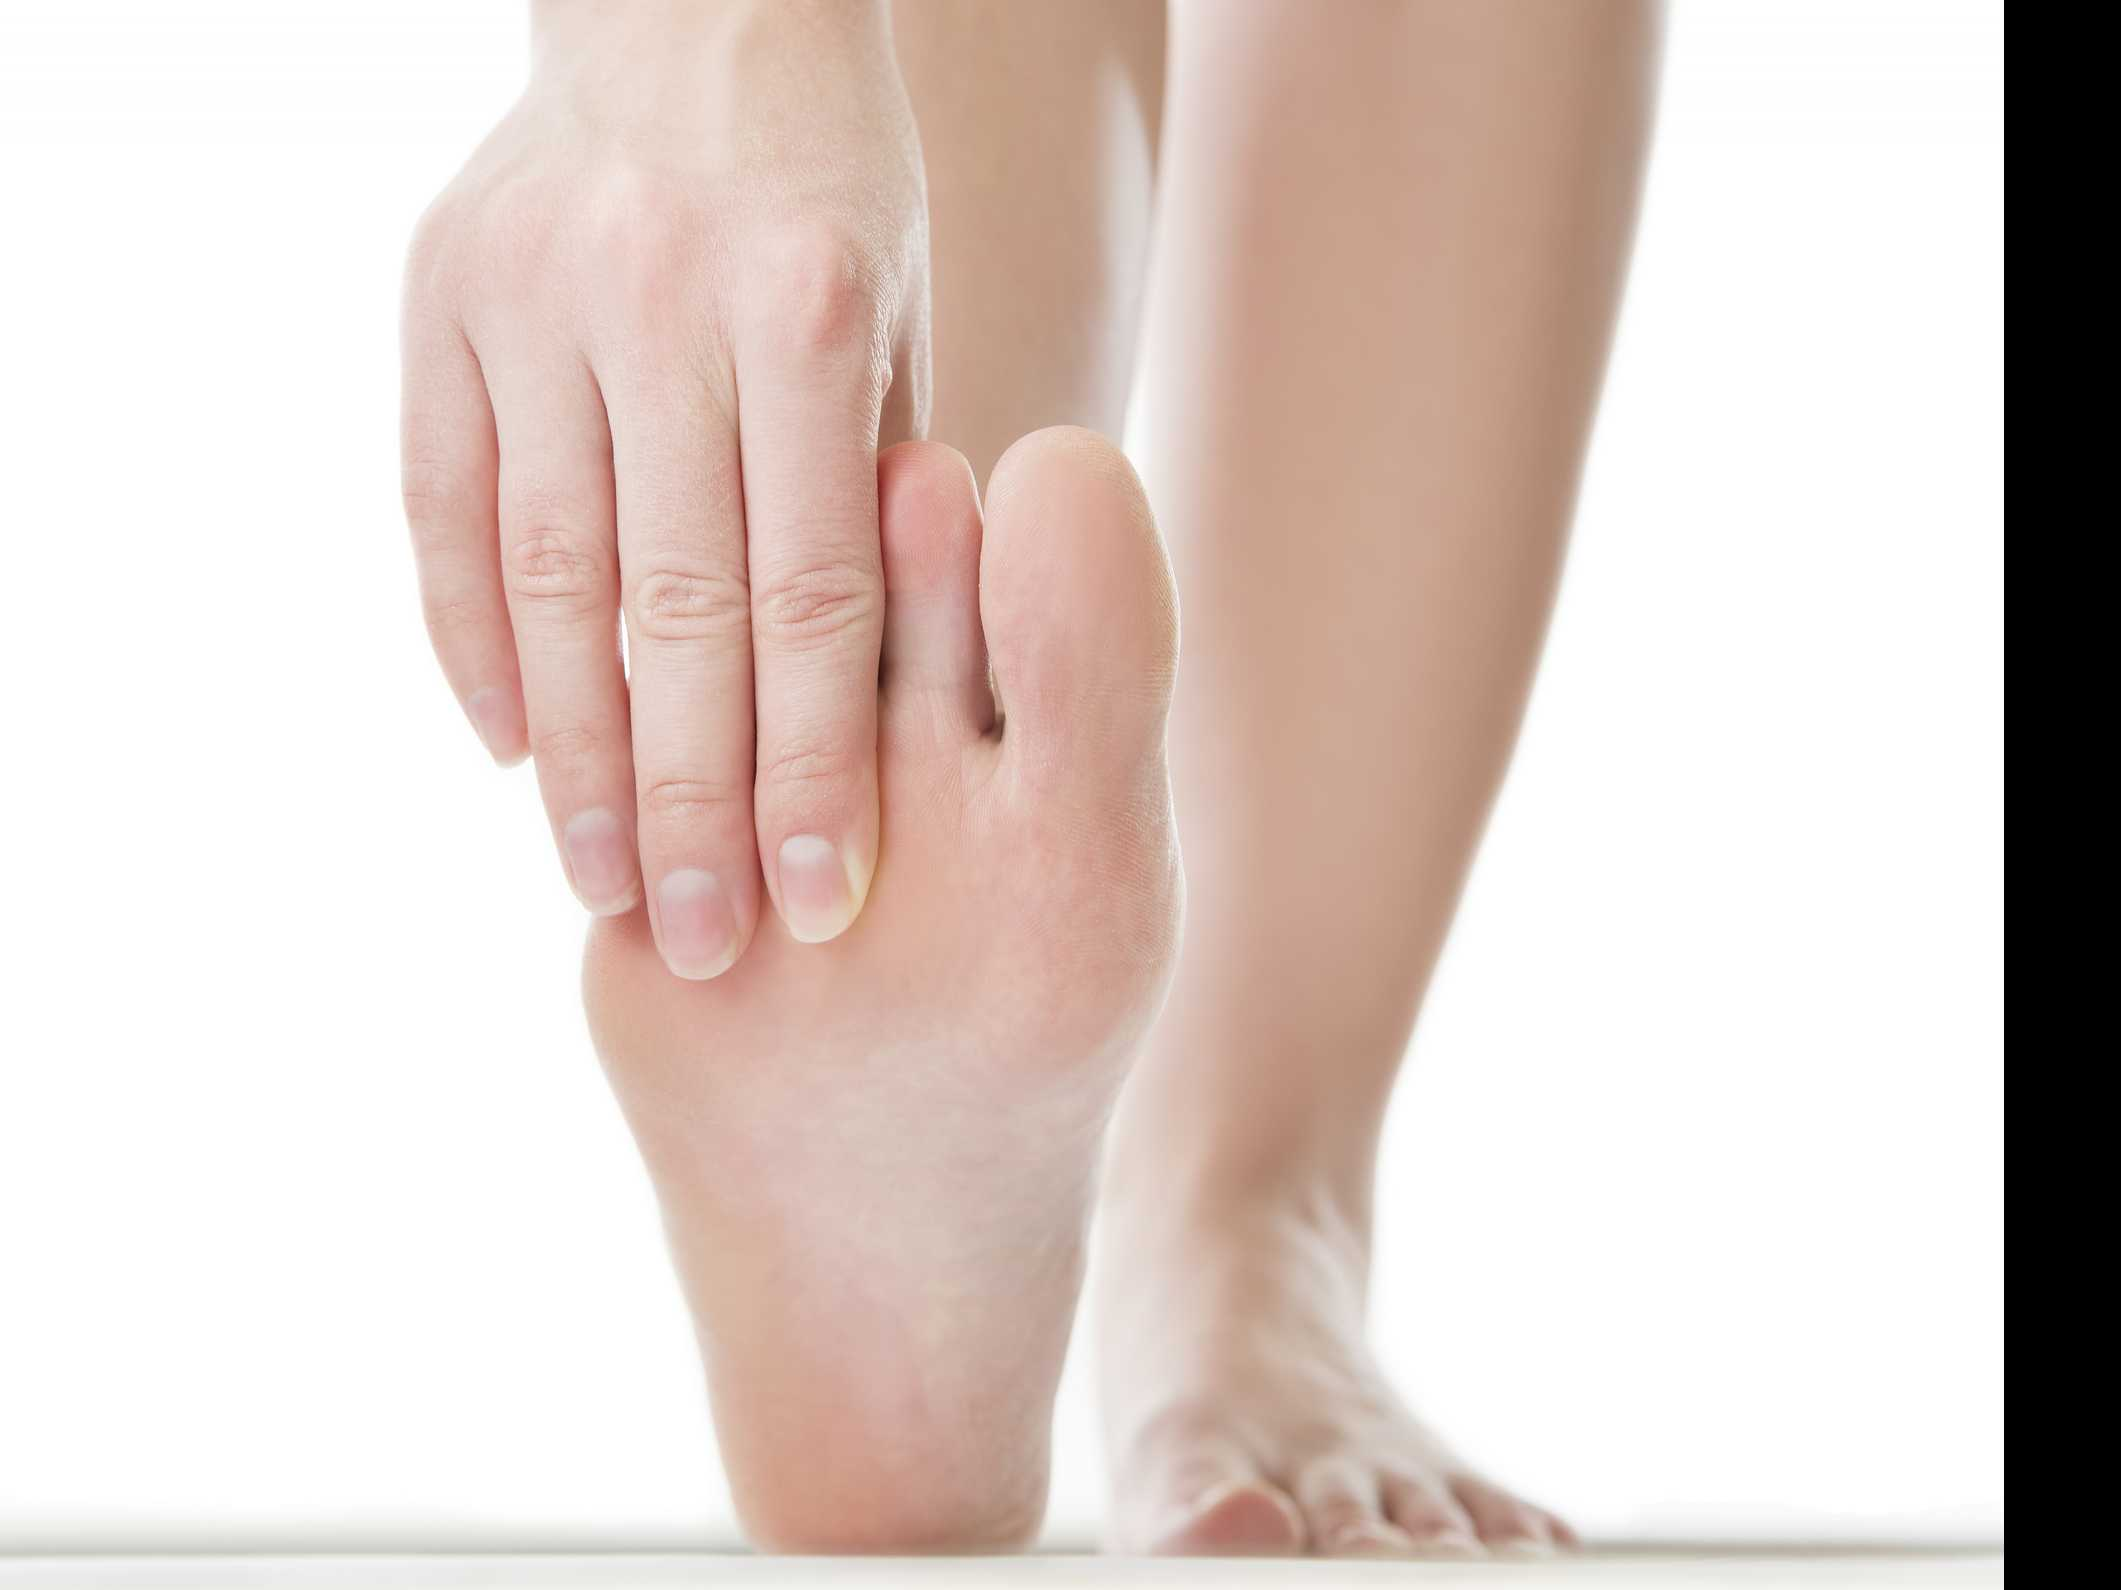 For American Diabetes Month, Tips to Keep Your Feet Healthy